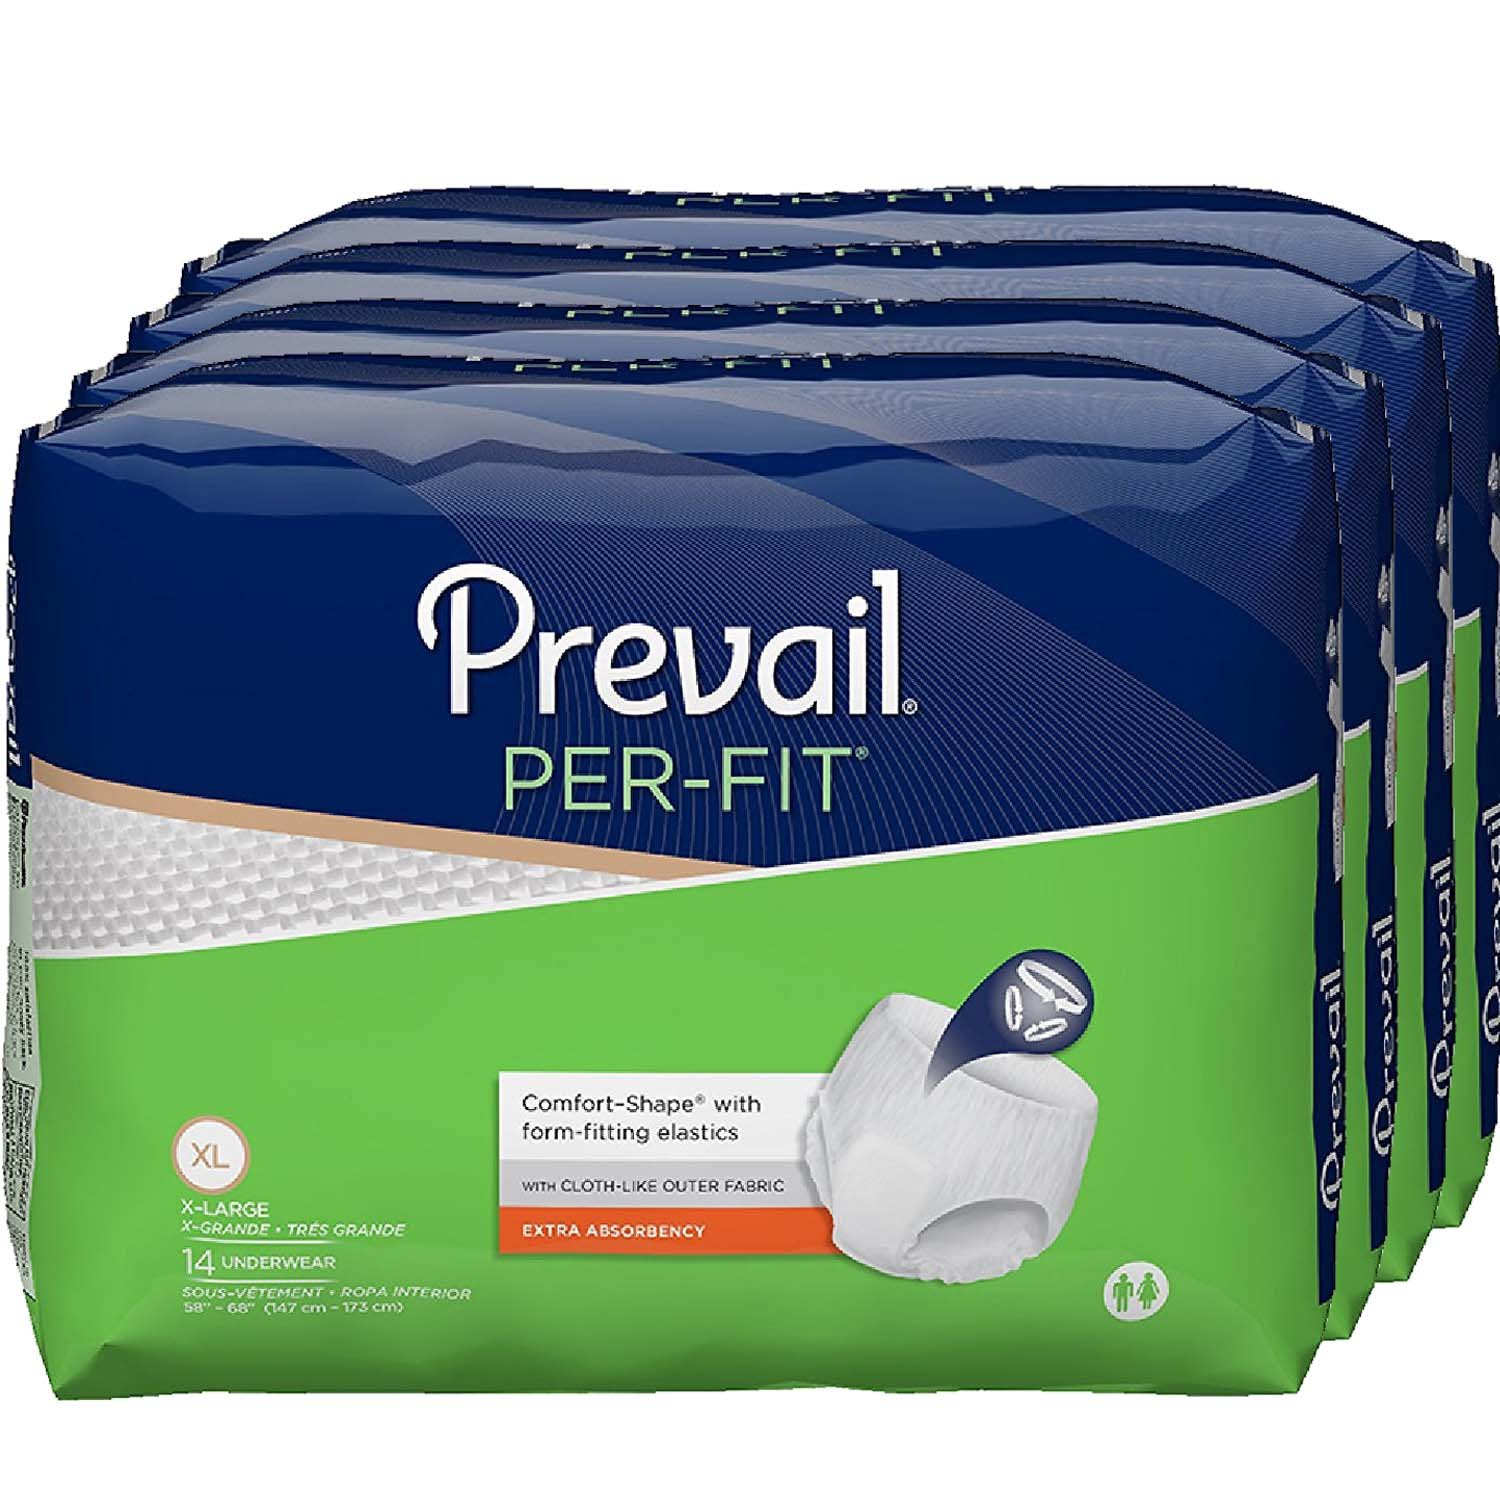 Prevail Per-Fit Extra Absorbency Incontinence Underwear, Extra Large, 14-Count (